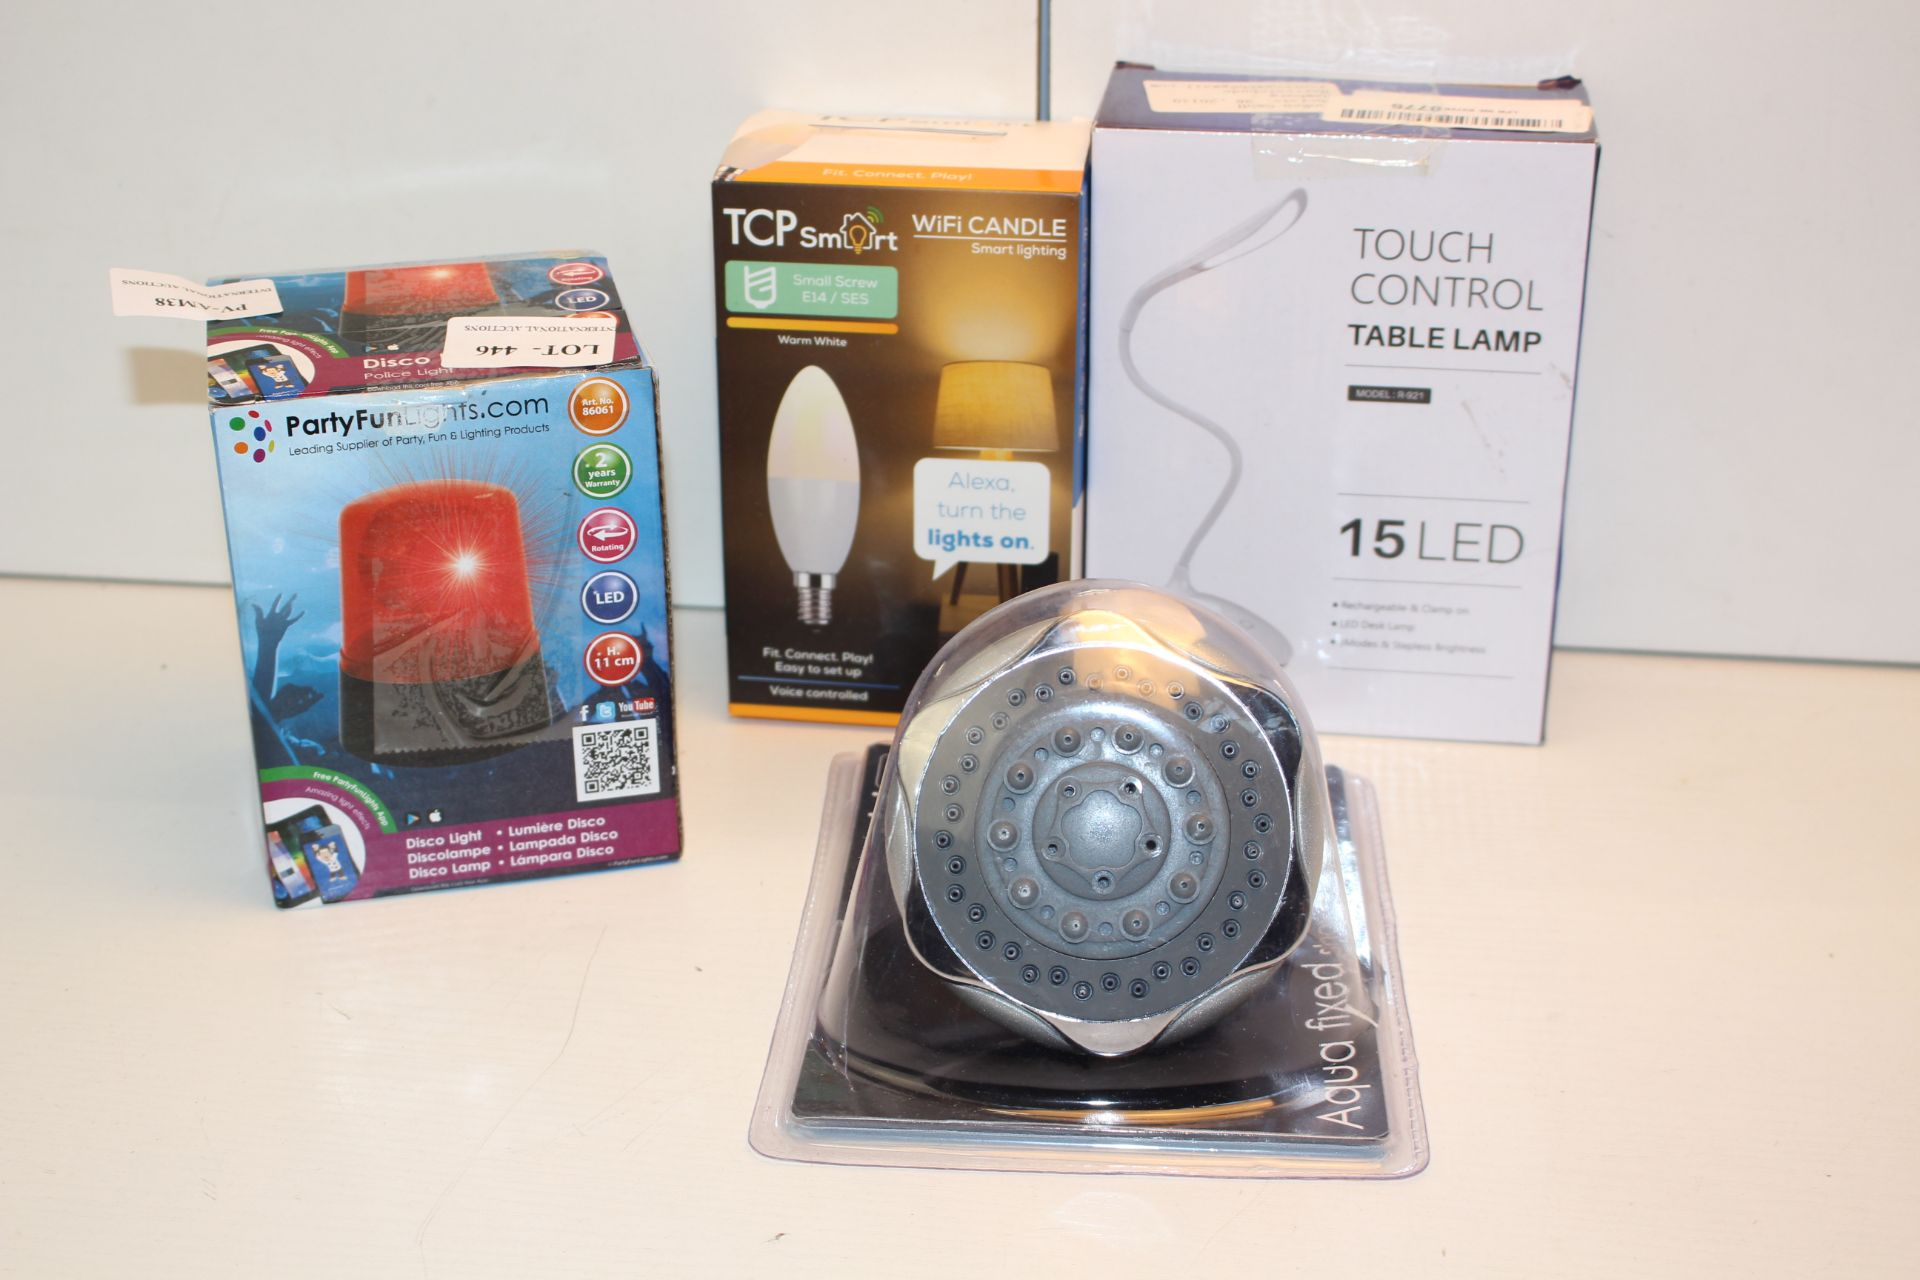 X4 HOME ITEMS INCLUDING LIGHTS, SIREN AND OTHER, PLEASEW USE IMAGE AS A GUIDECondition